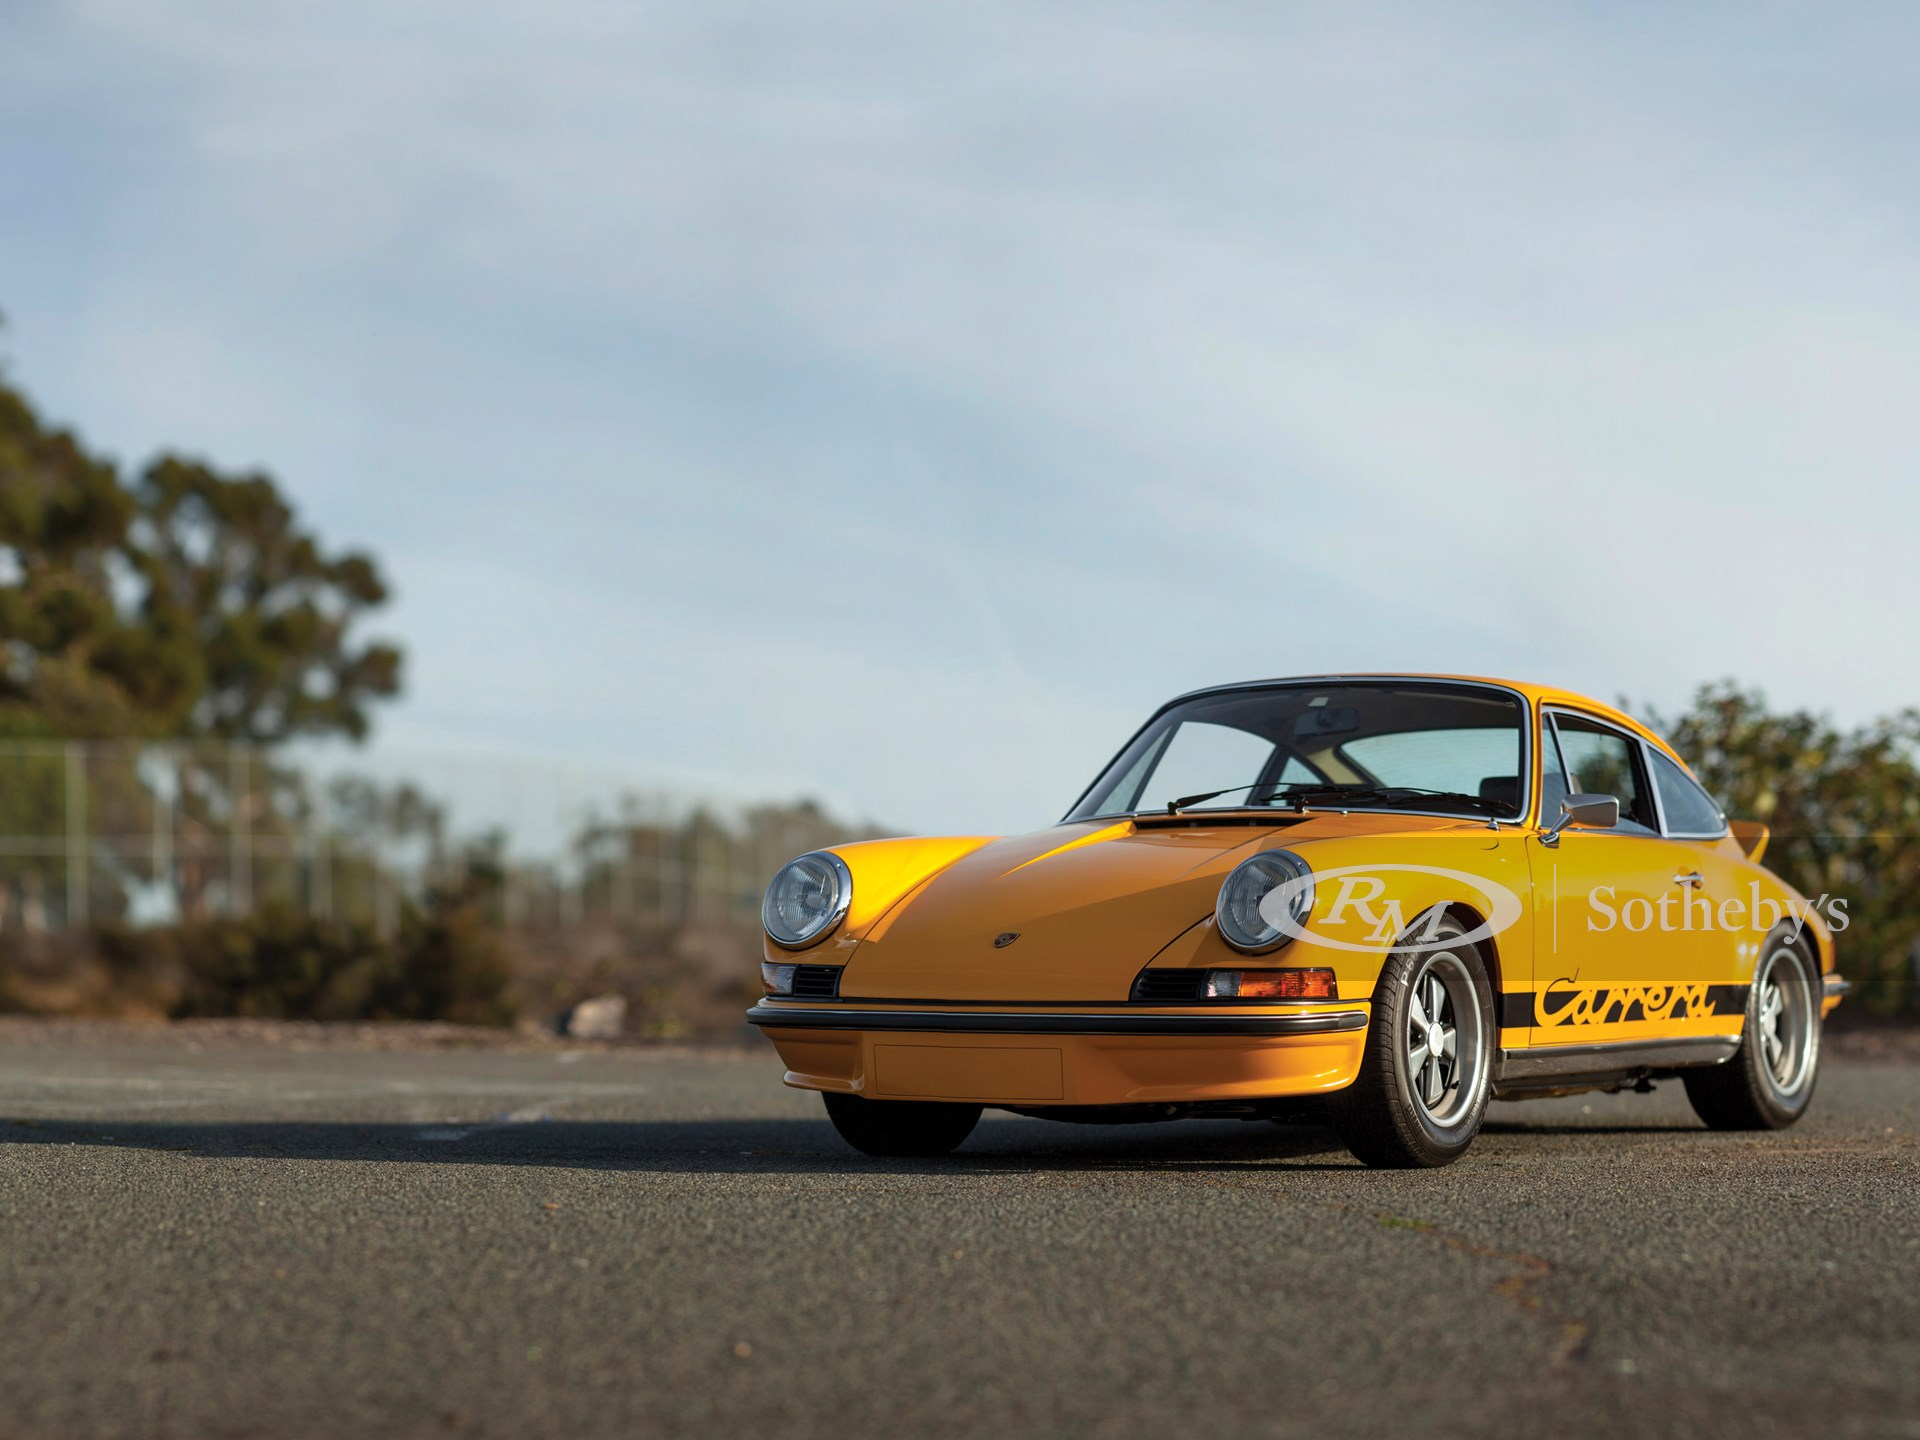 1973 Porsche 911 Carrera RS 2.7 Touring | New York - Driven By Disruption  2015 | RM Sotheby'sRM Sotheby's